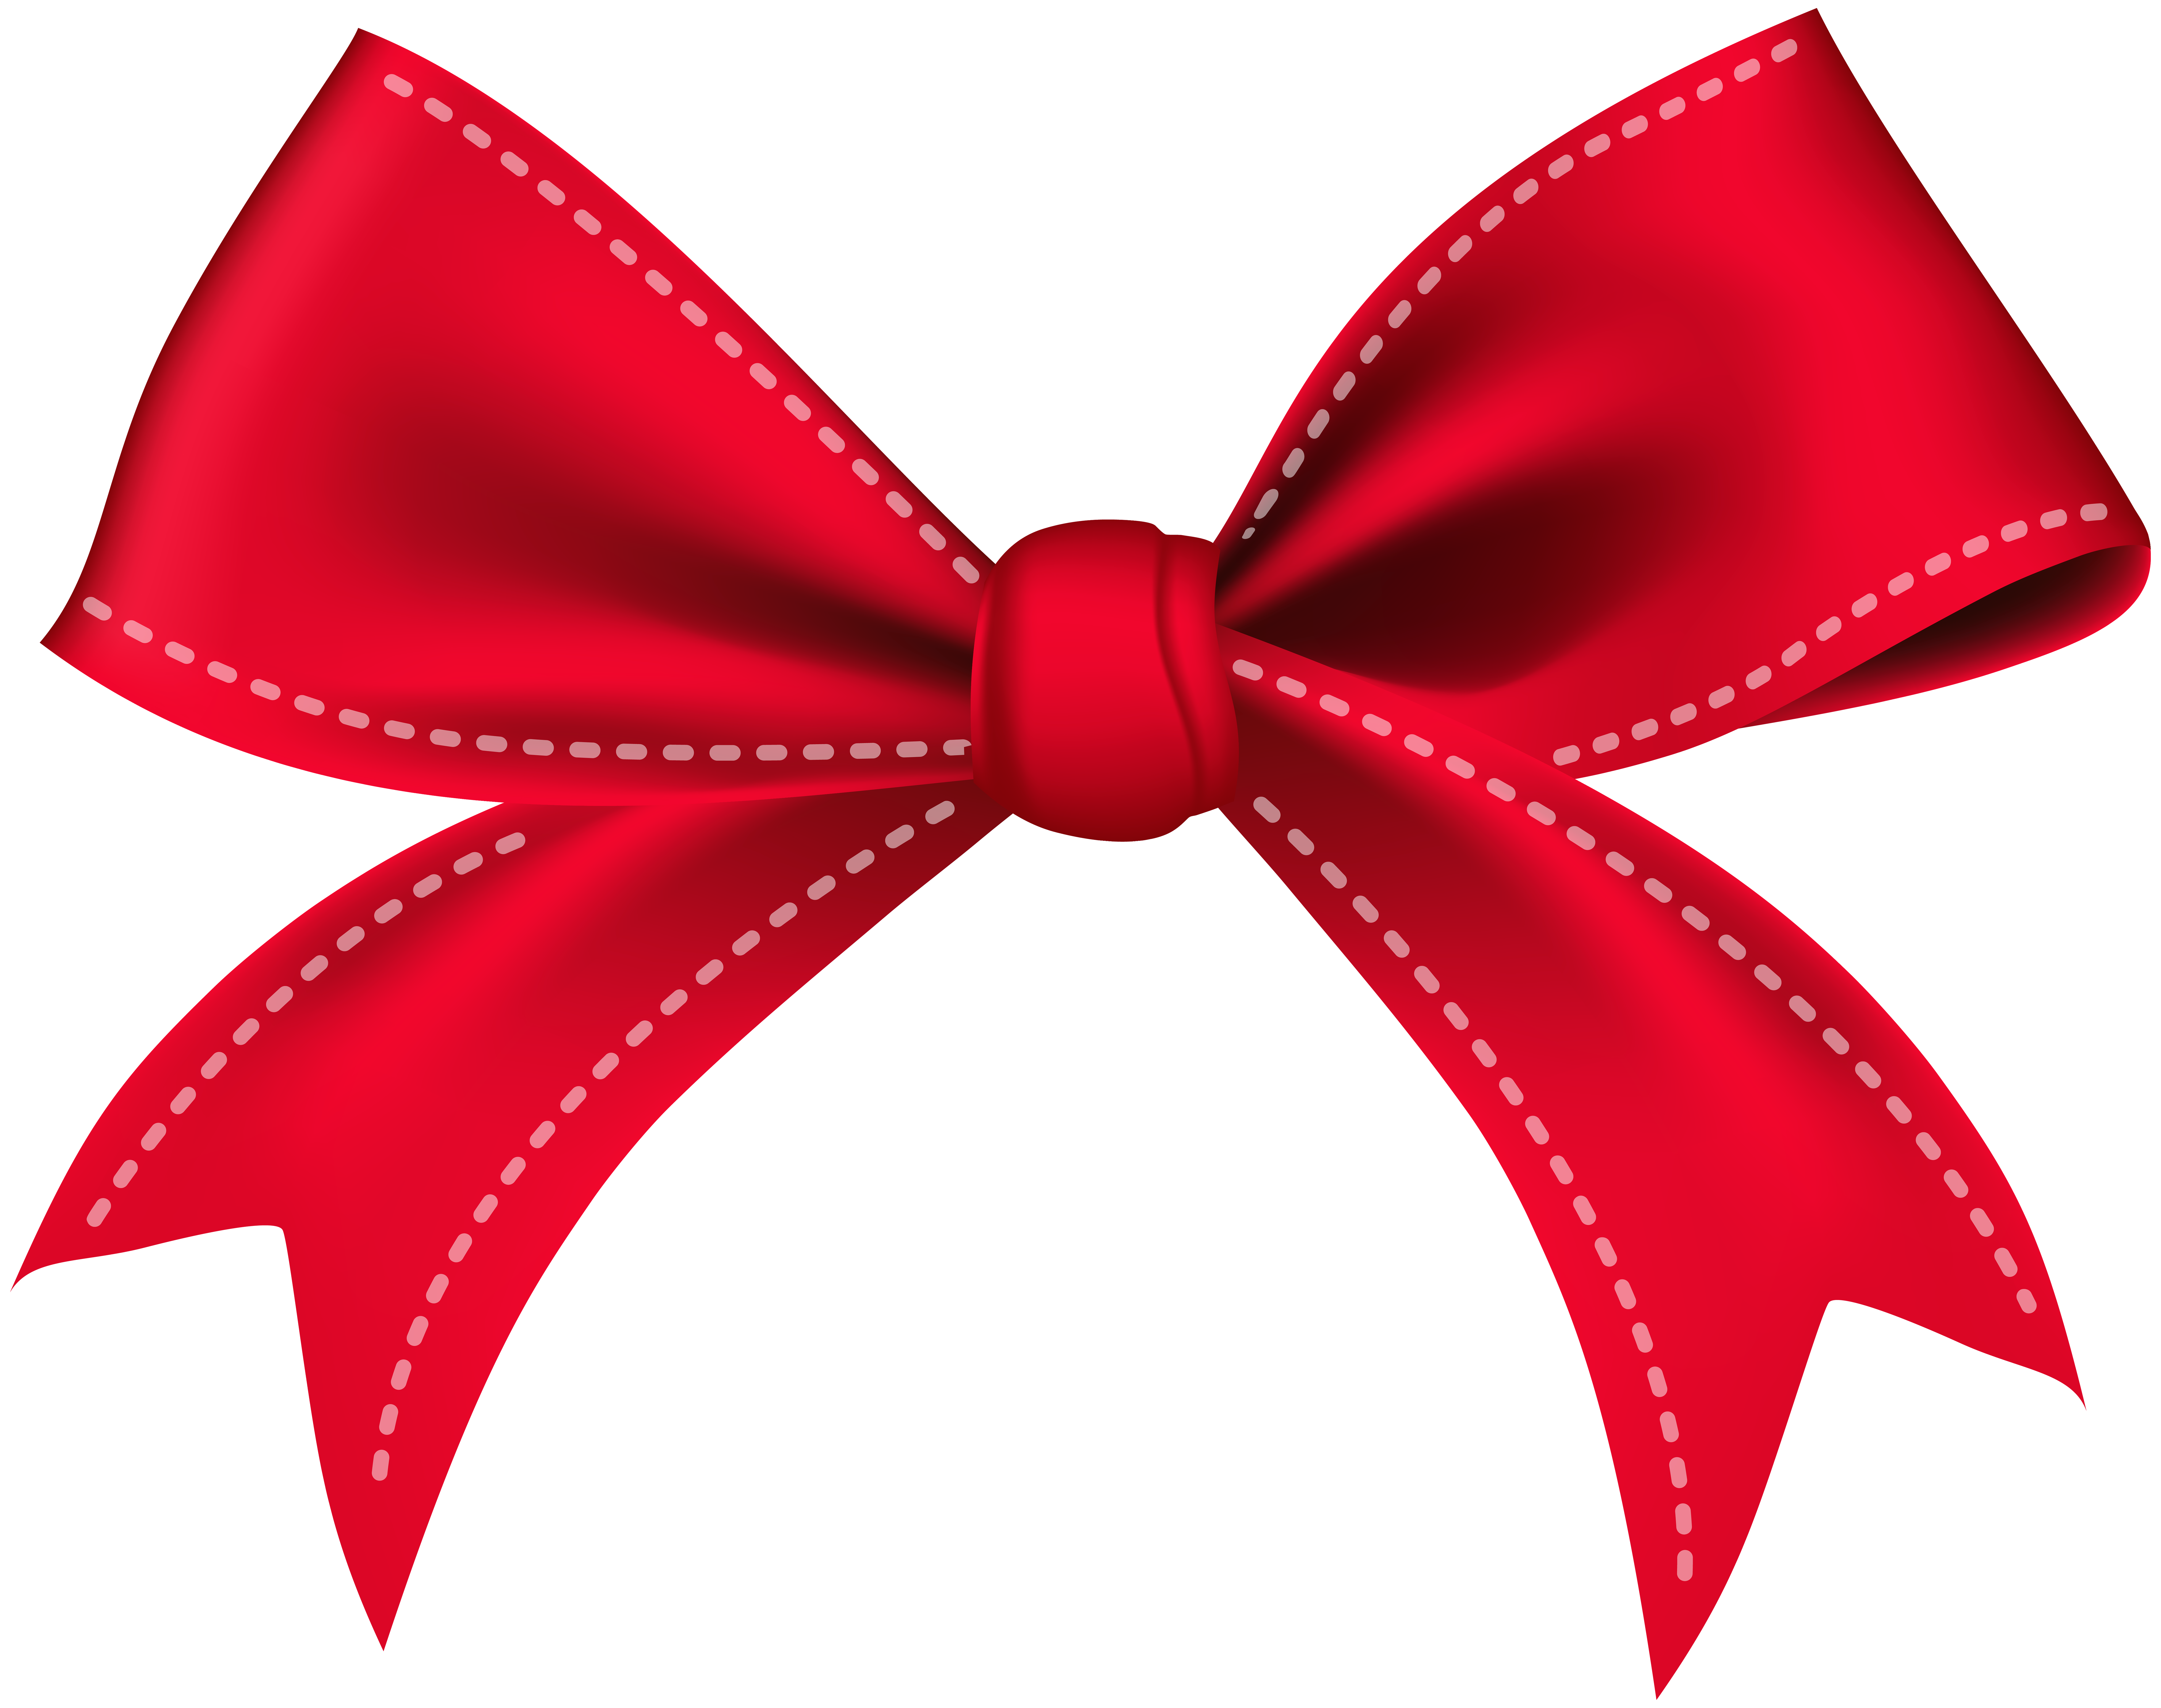 Png clip art image. Clipart bow red